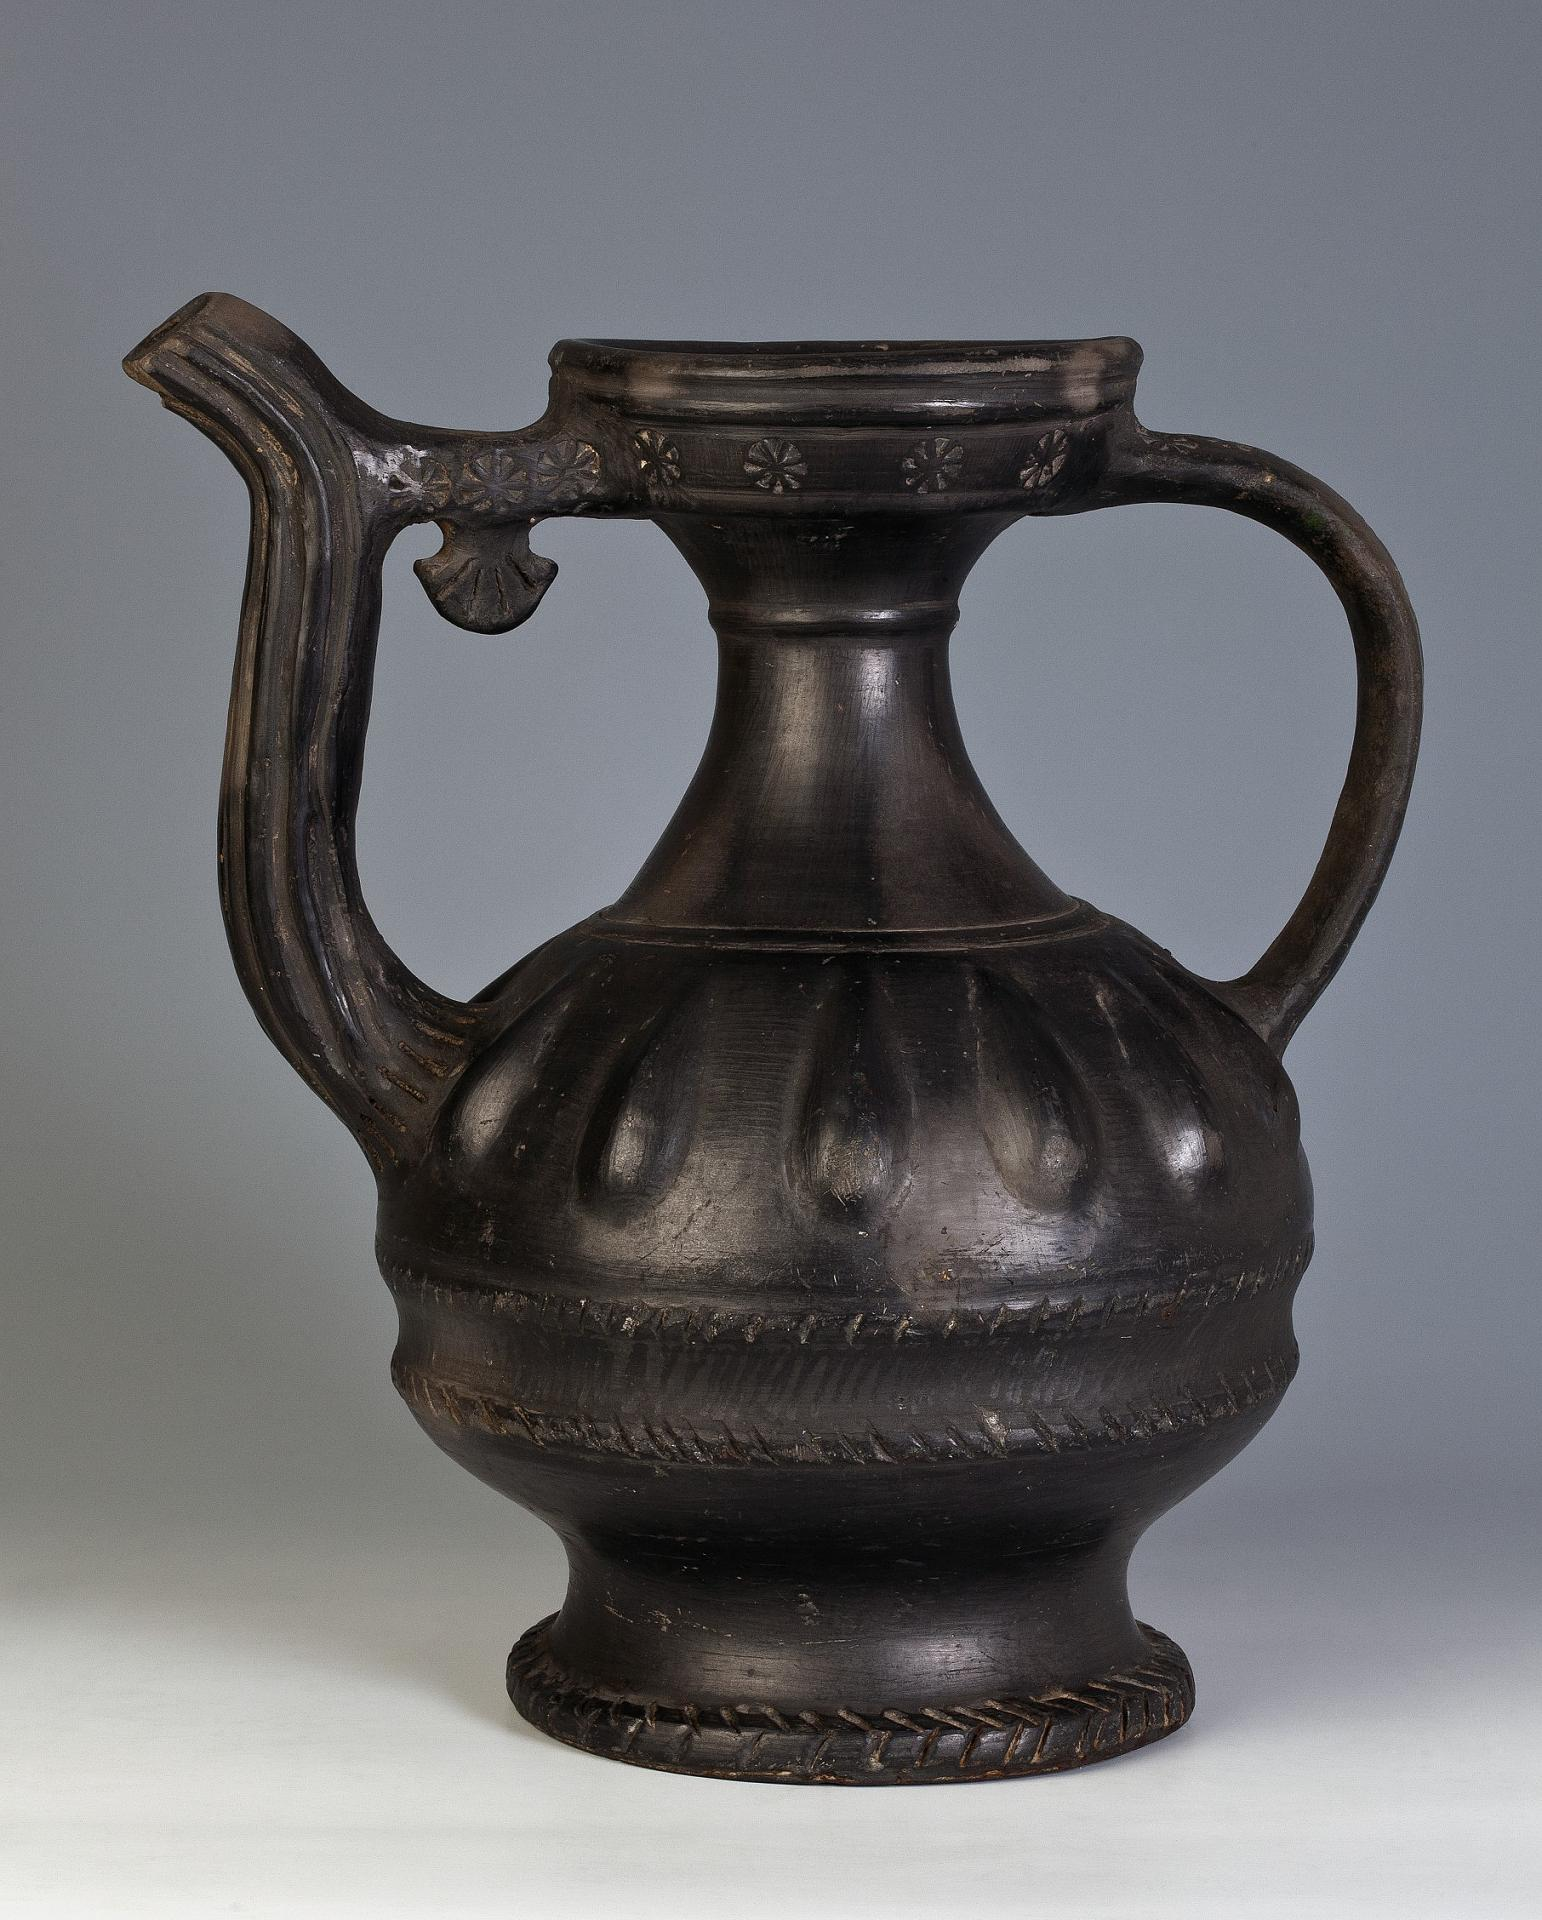 Kumgan, Russia, 18th century, black ceramics, polishing